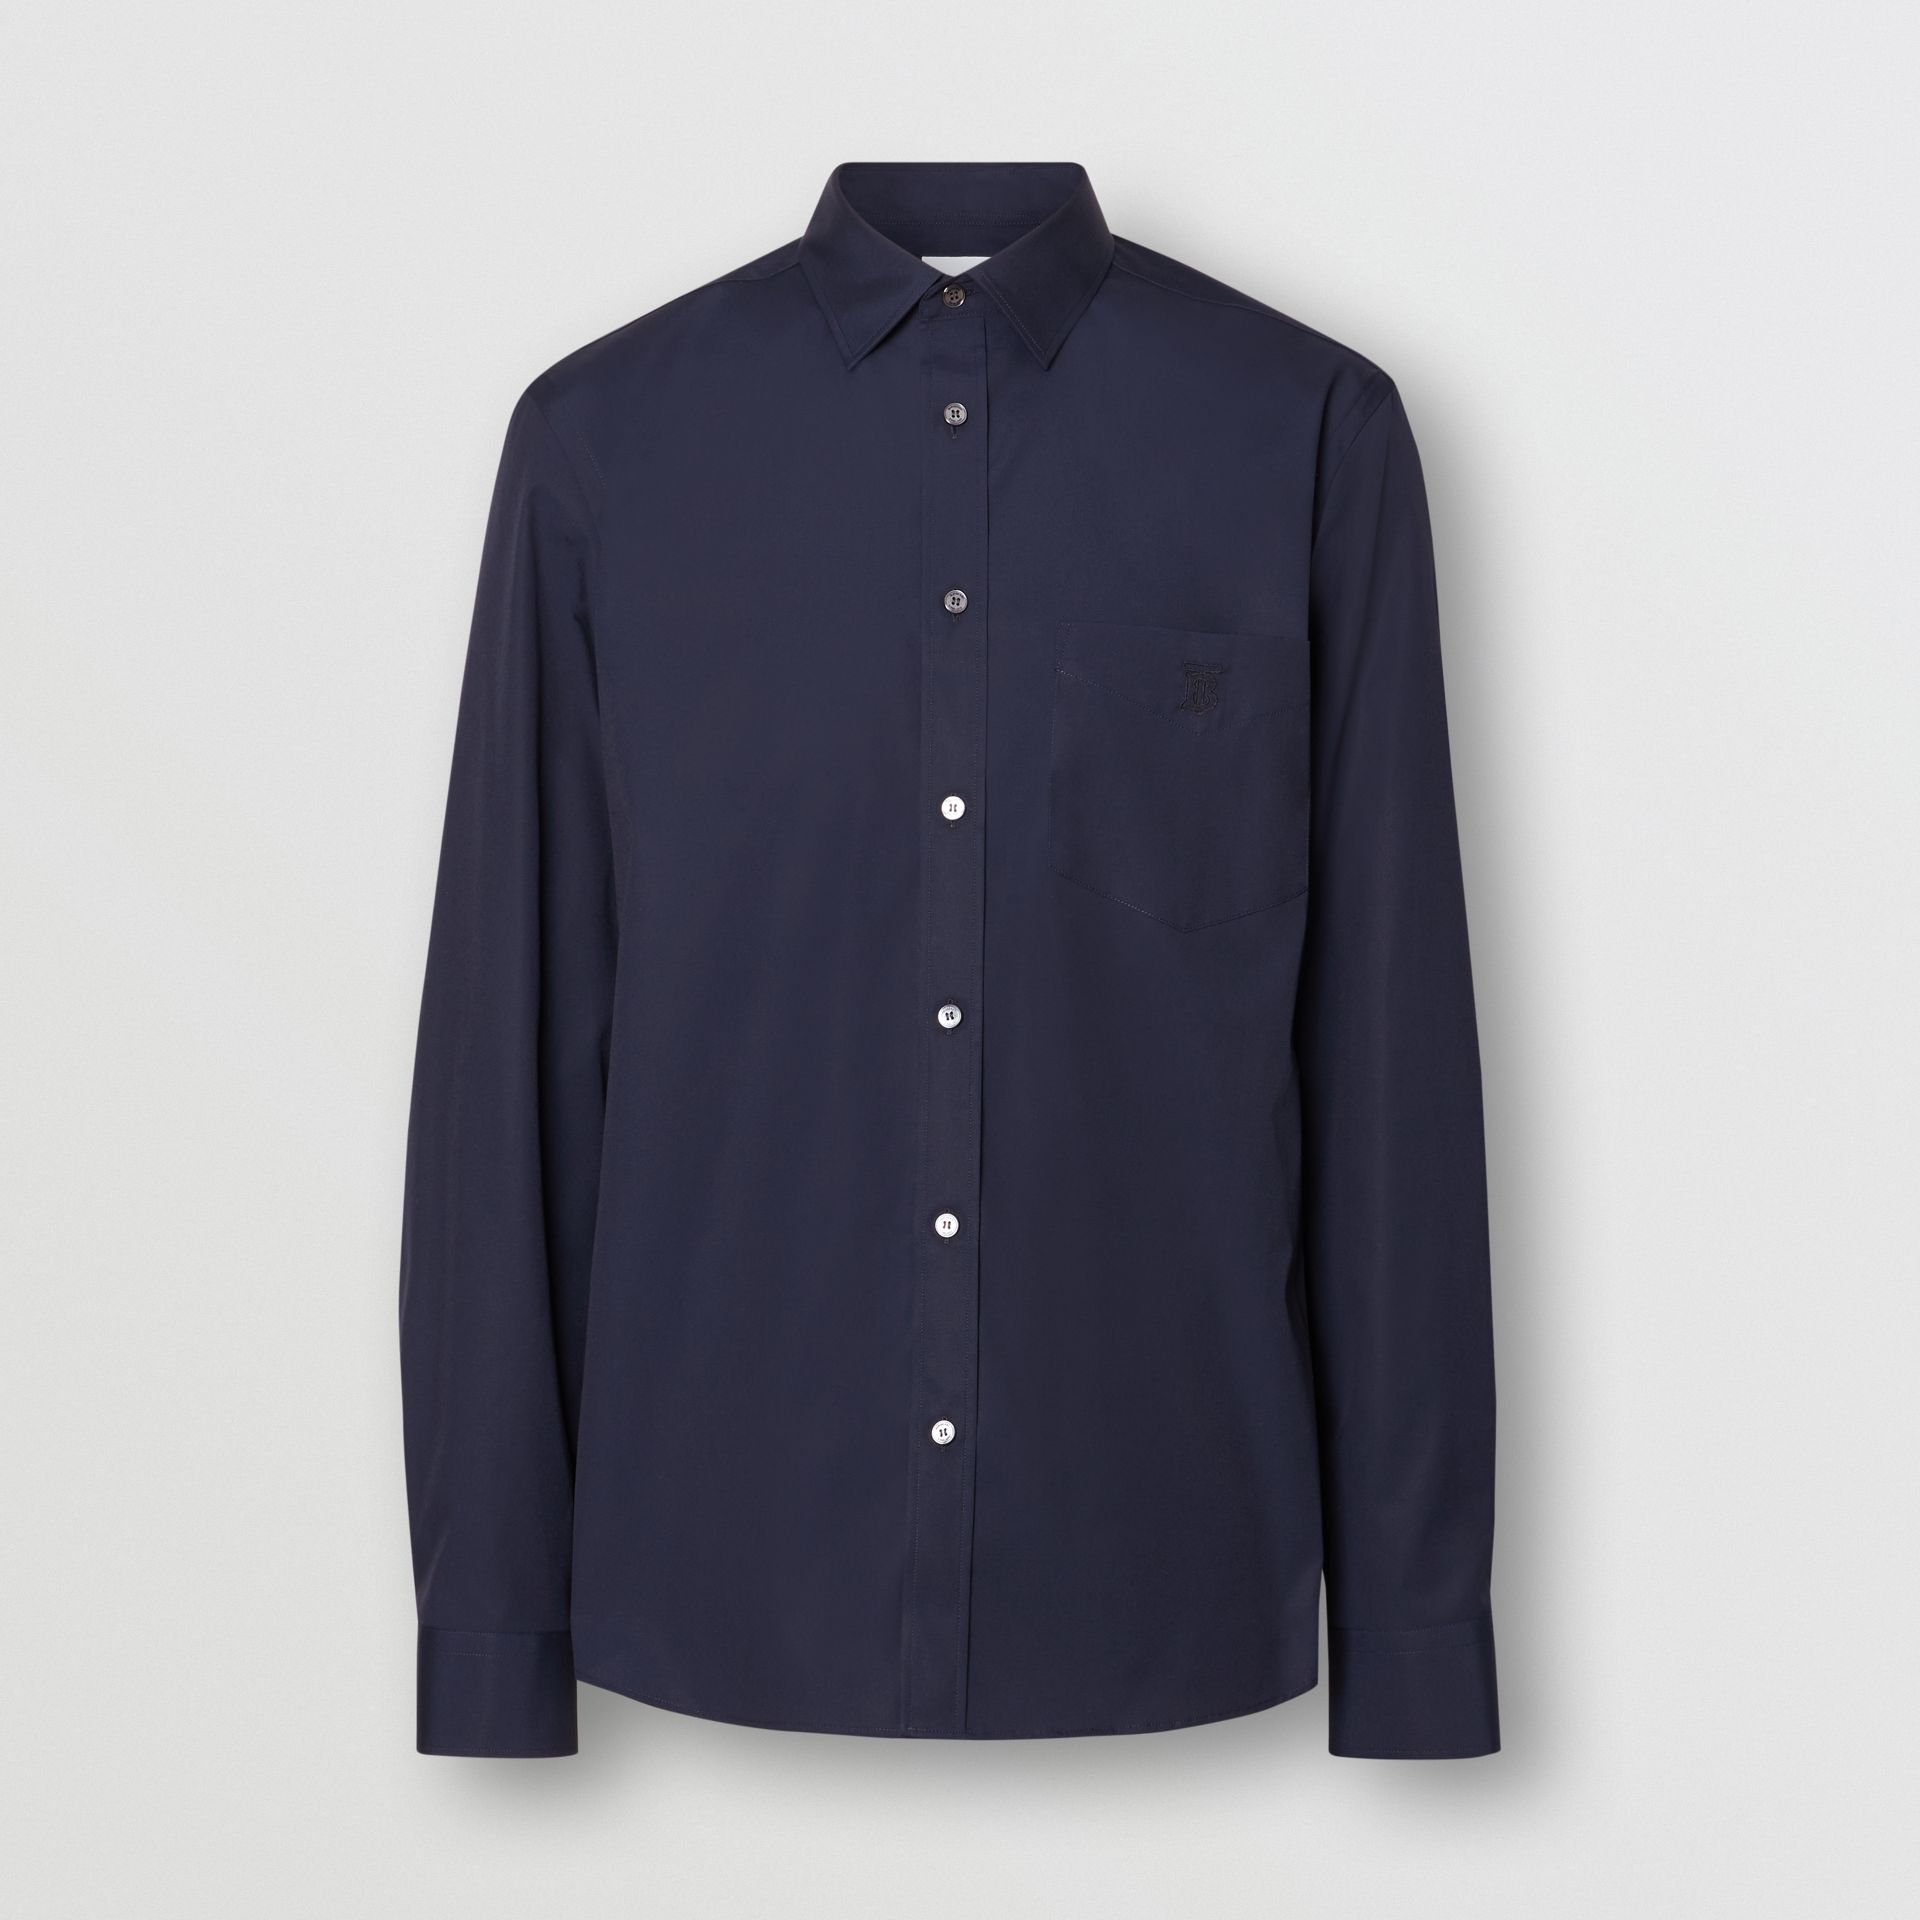 Monogram Motif Stretch Cotton Poplin Shirt in Navy - Men | Burberry - gallery image 3